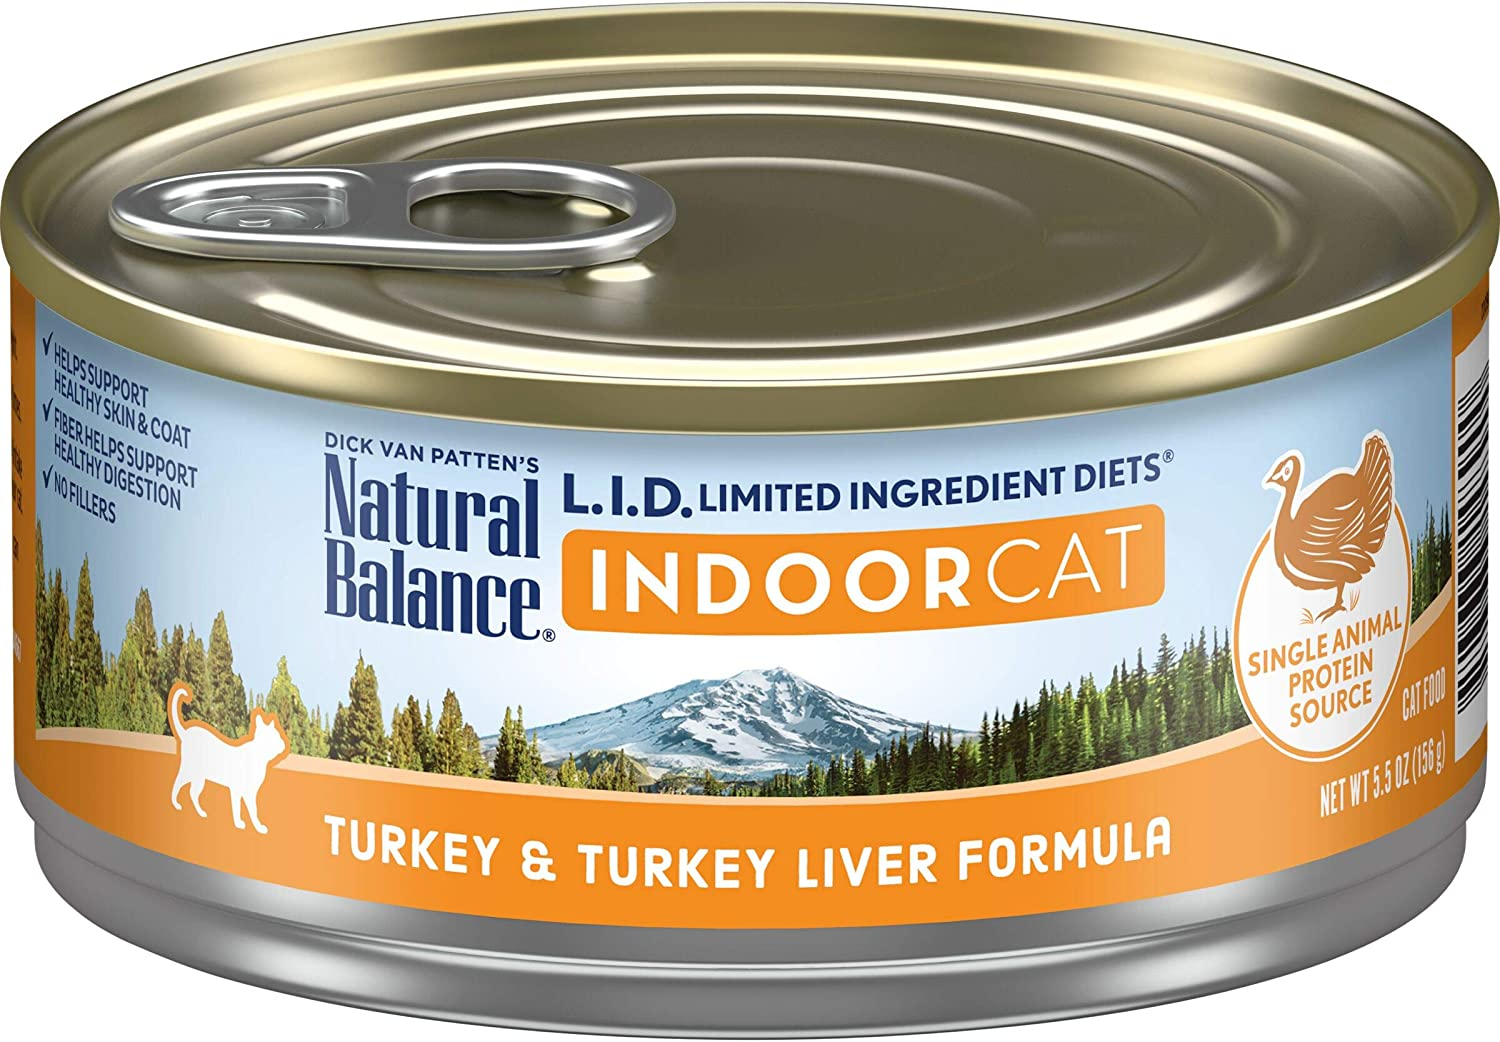 Natural Balance L.I.D. Limited Ingredient Diets Wet Cat Food for Indoor Cats, 5.5 Ounce (Pack of 24)